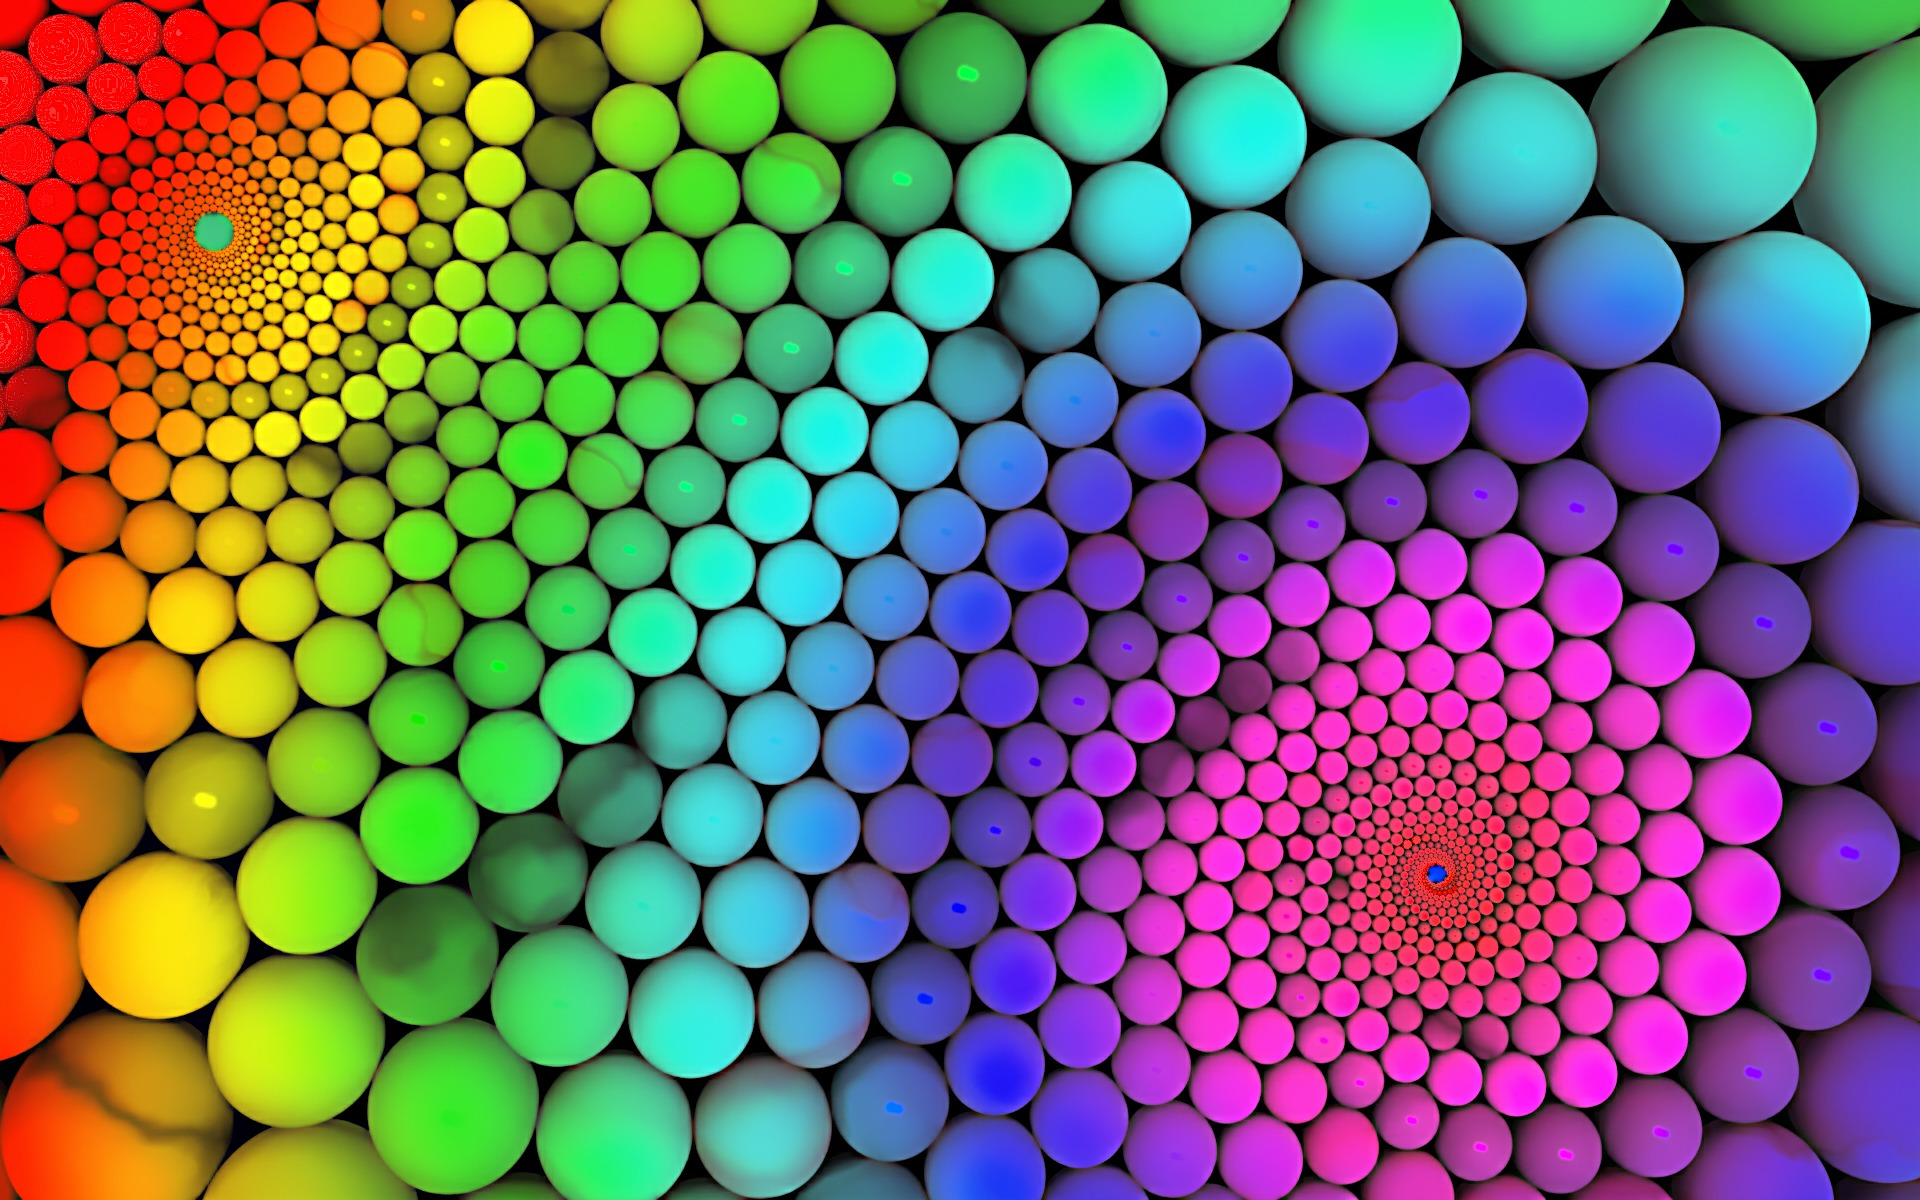 Cool-Colorful-3d-Rainbow-HD-High-Resolution-Full-Size-wallpaper-wp3404146